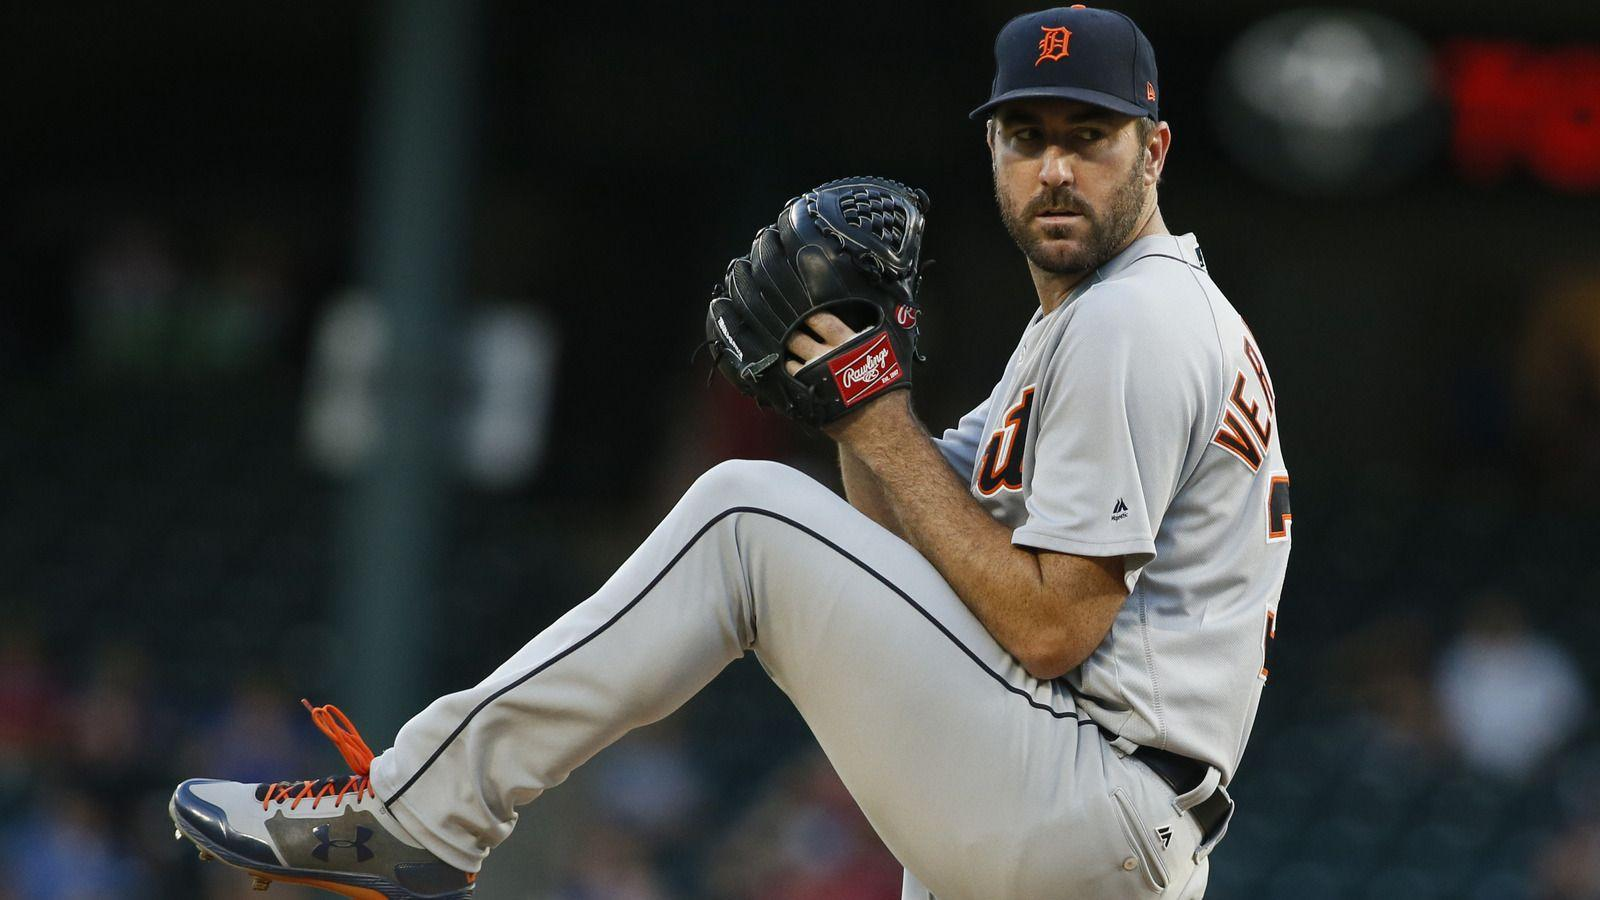 Justin Verlander implies baseballs are juiced | Yardbarker.com